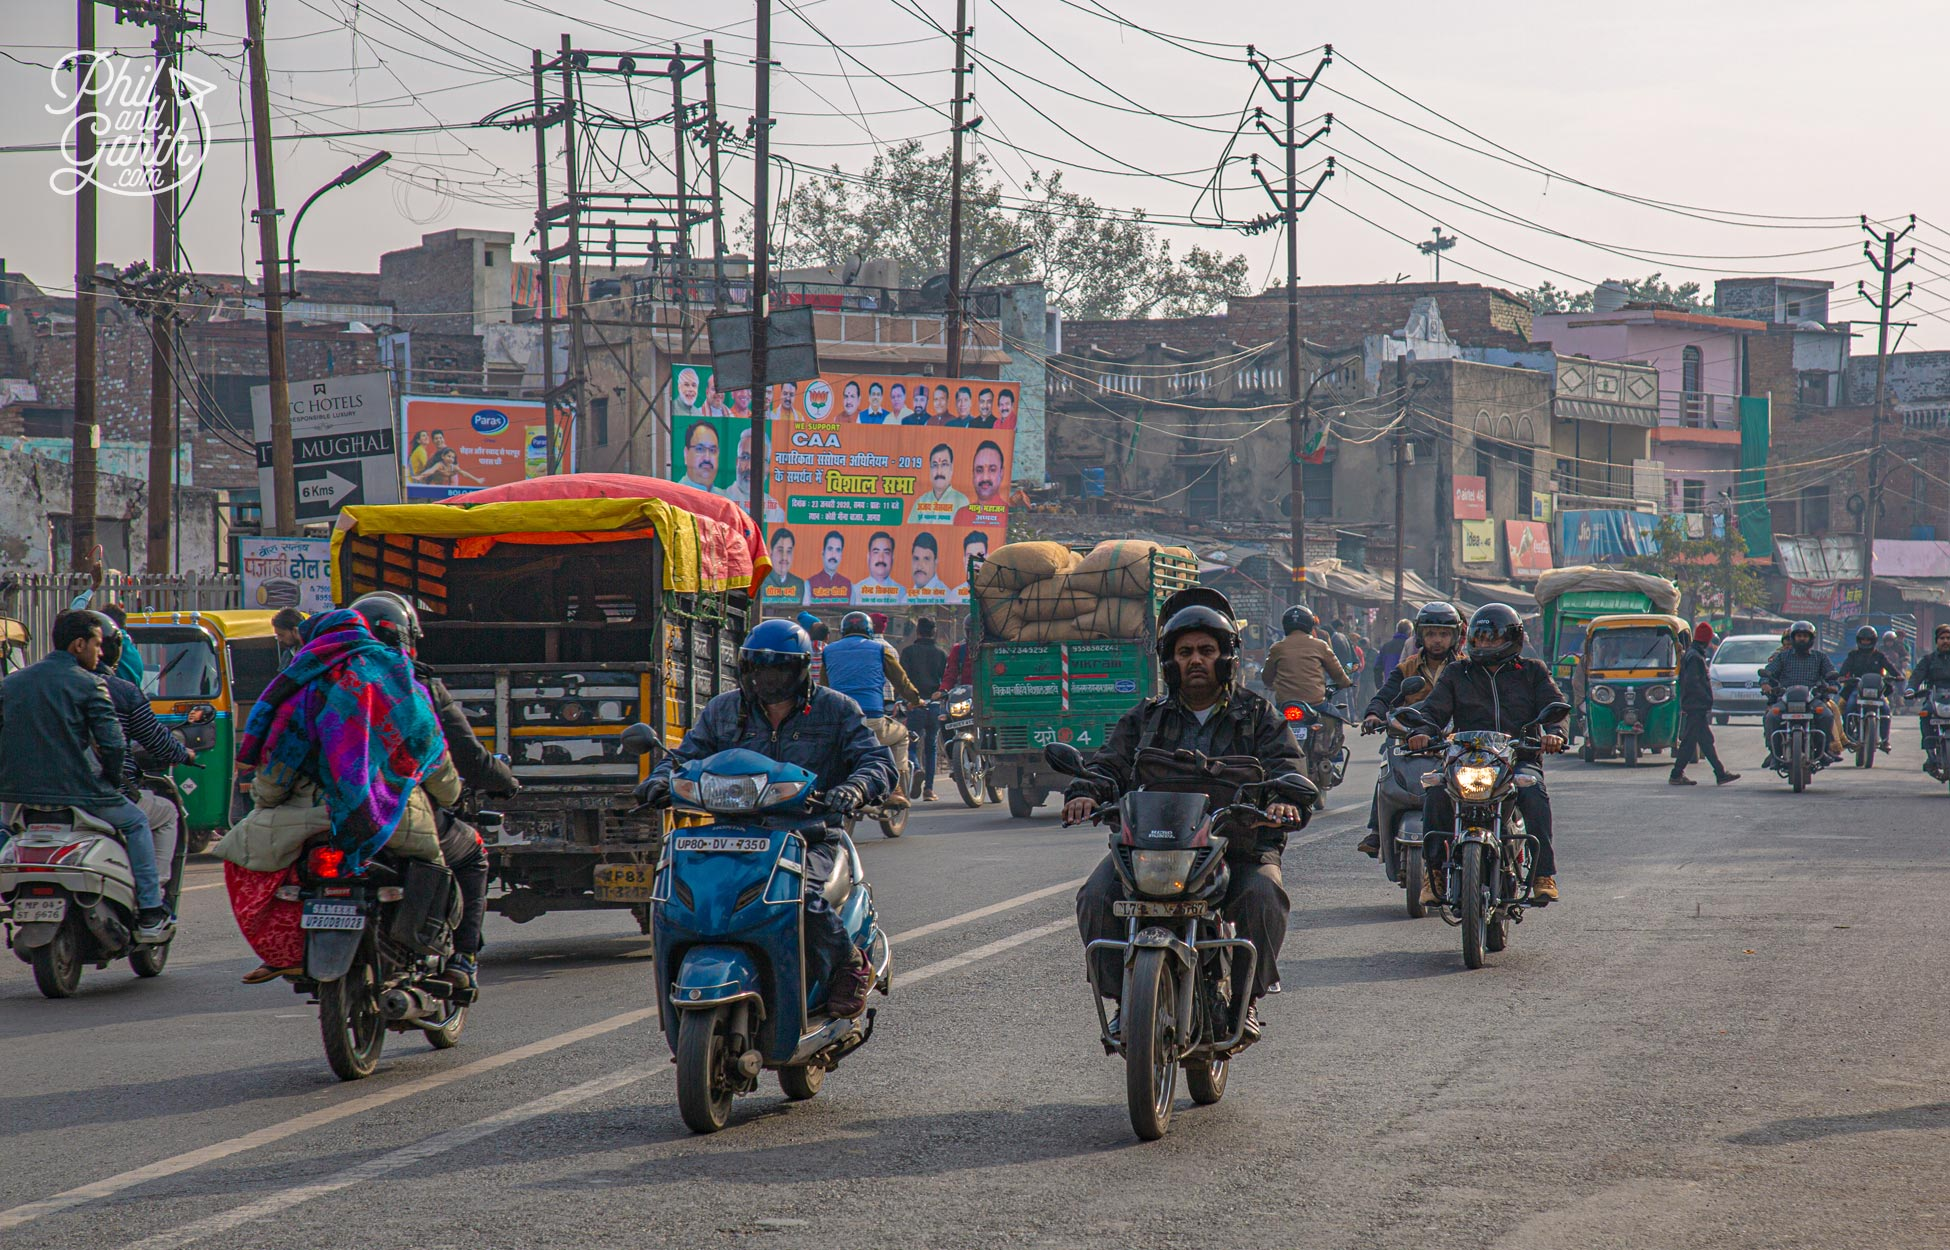 Driving through the traffic in Agra